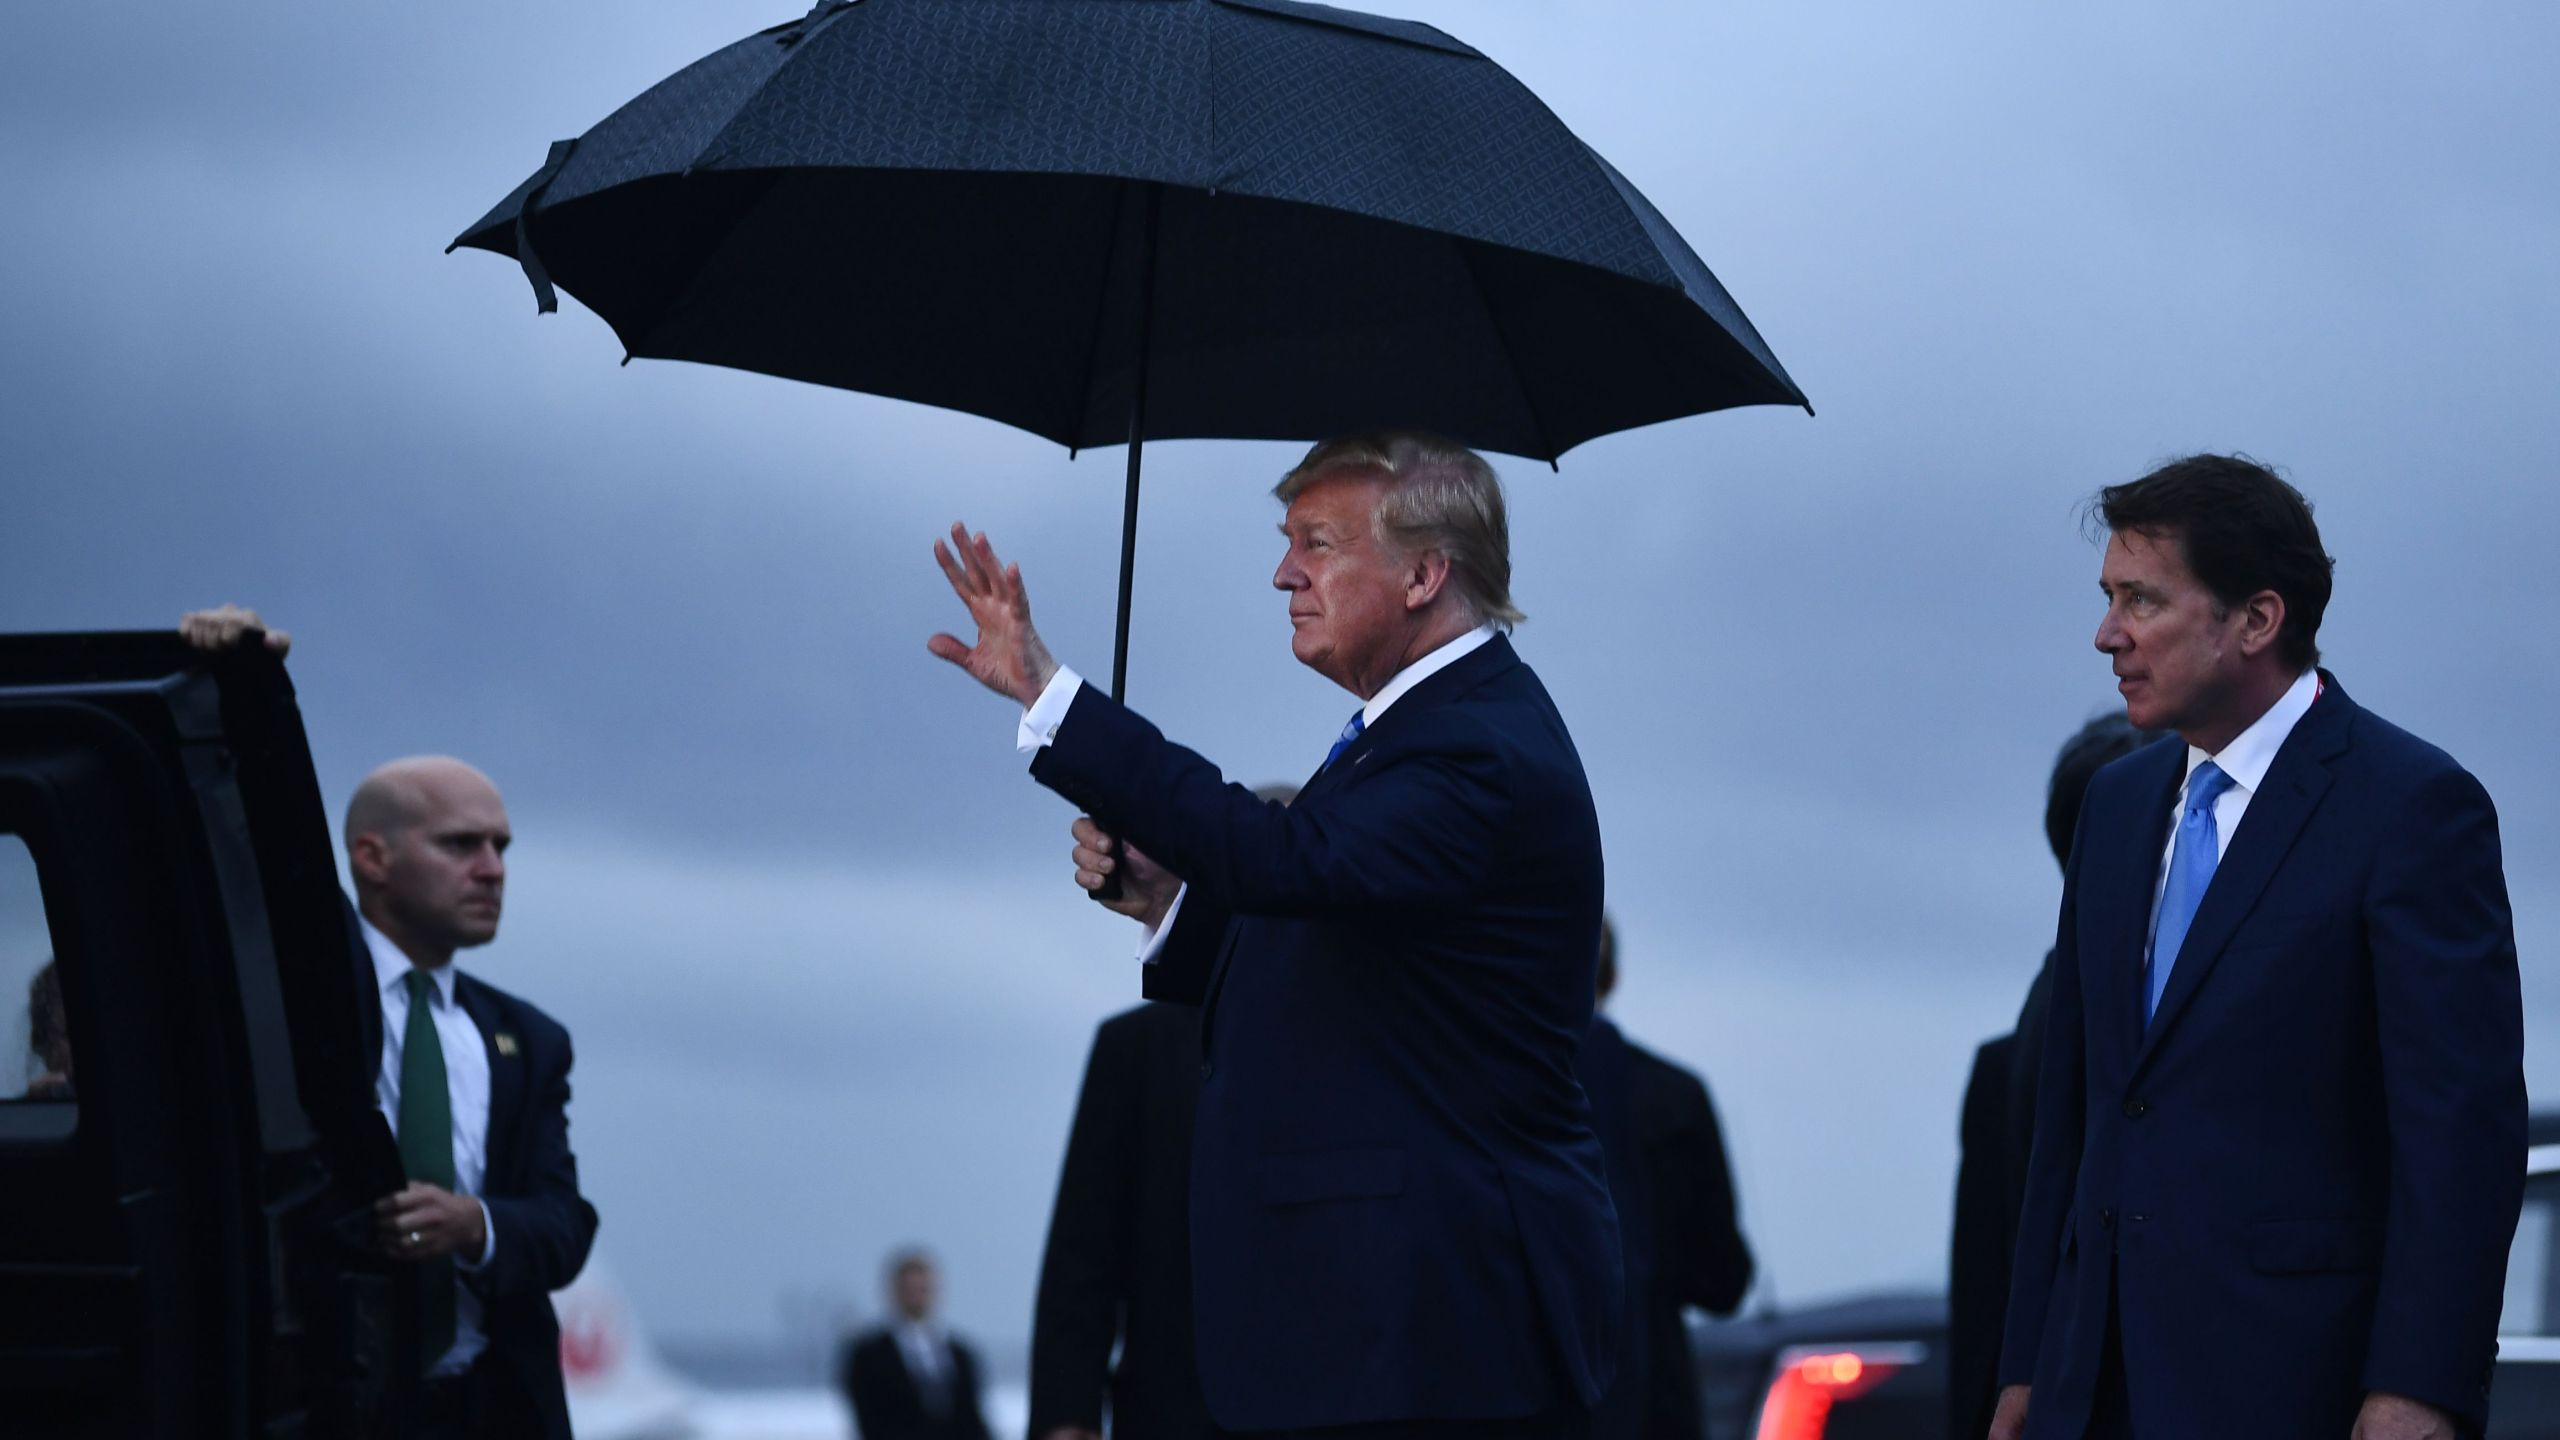 US President Donald Trump gestures as he arrives at Osaka International Airport in Itami, Hyogo prefecture, on June 27, 2019 ahead of the G20 Osaka Summit. (Credit: BRENDAN SMIALOWSKI/AFP/Getty Images)